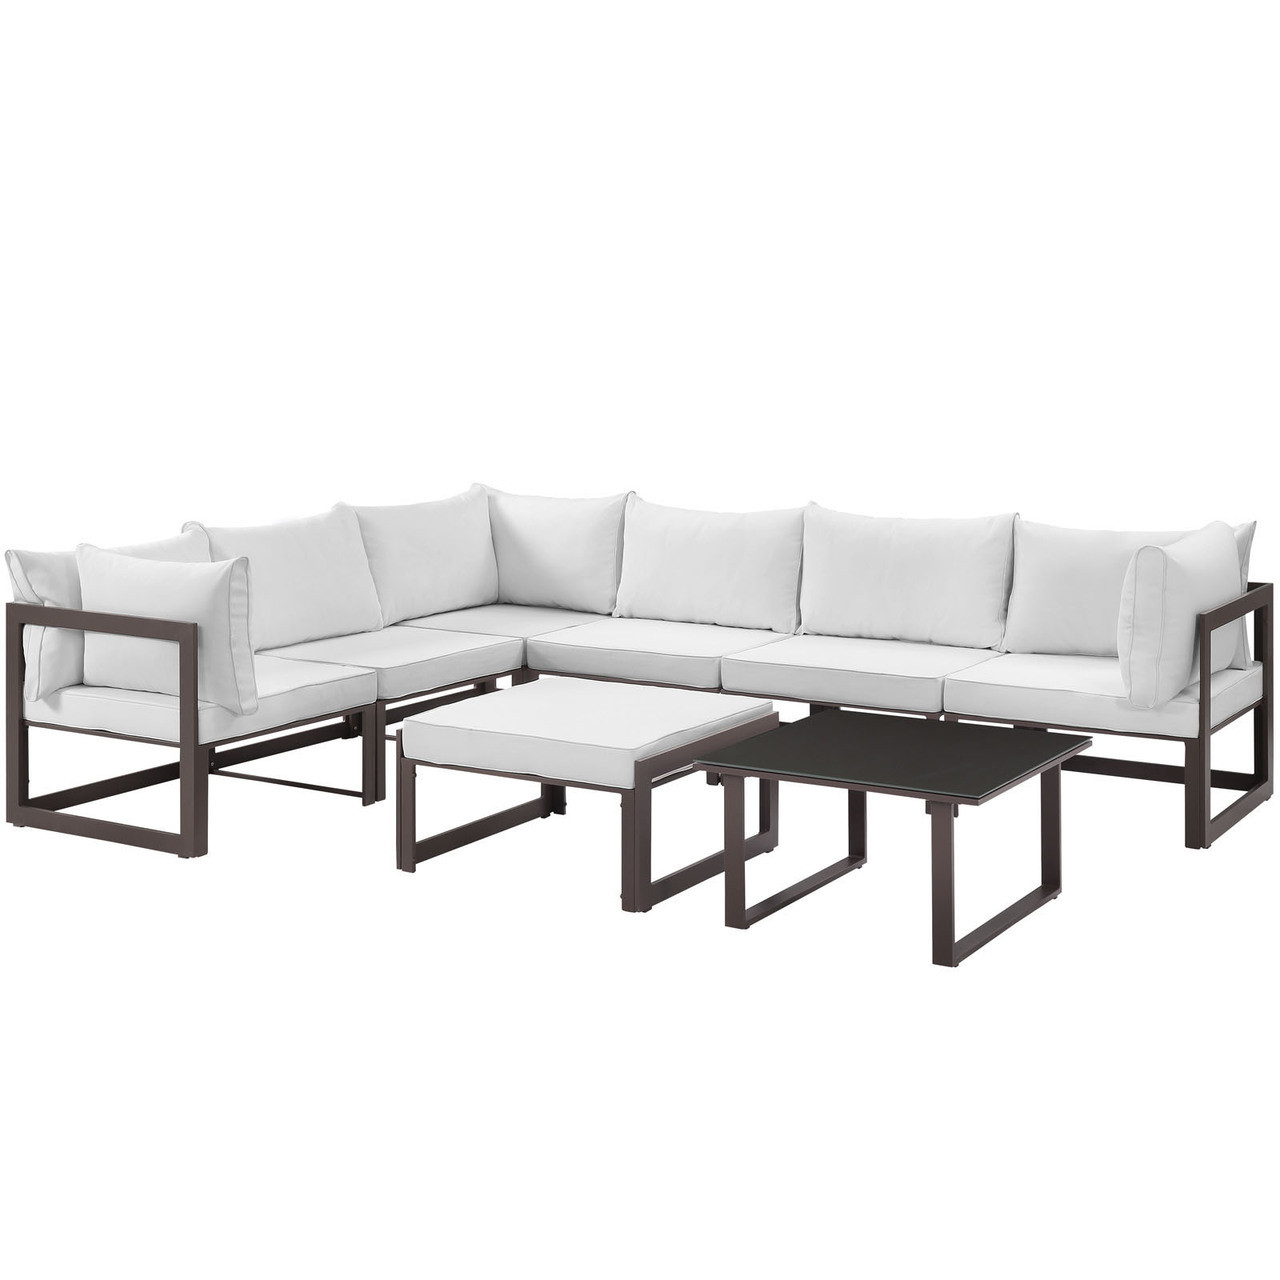 Fortuna 8 Piece Outdoor Patio Sectional Sofa Set, Steel Brown White Fabric